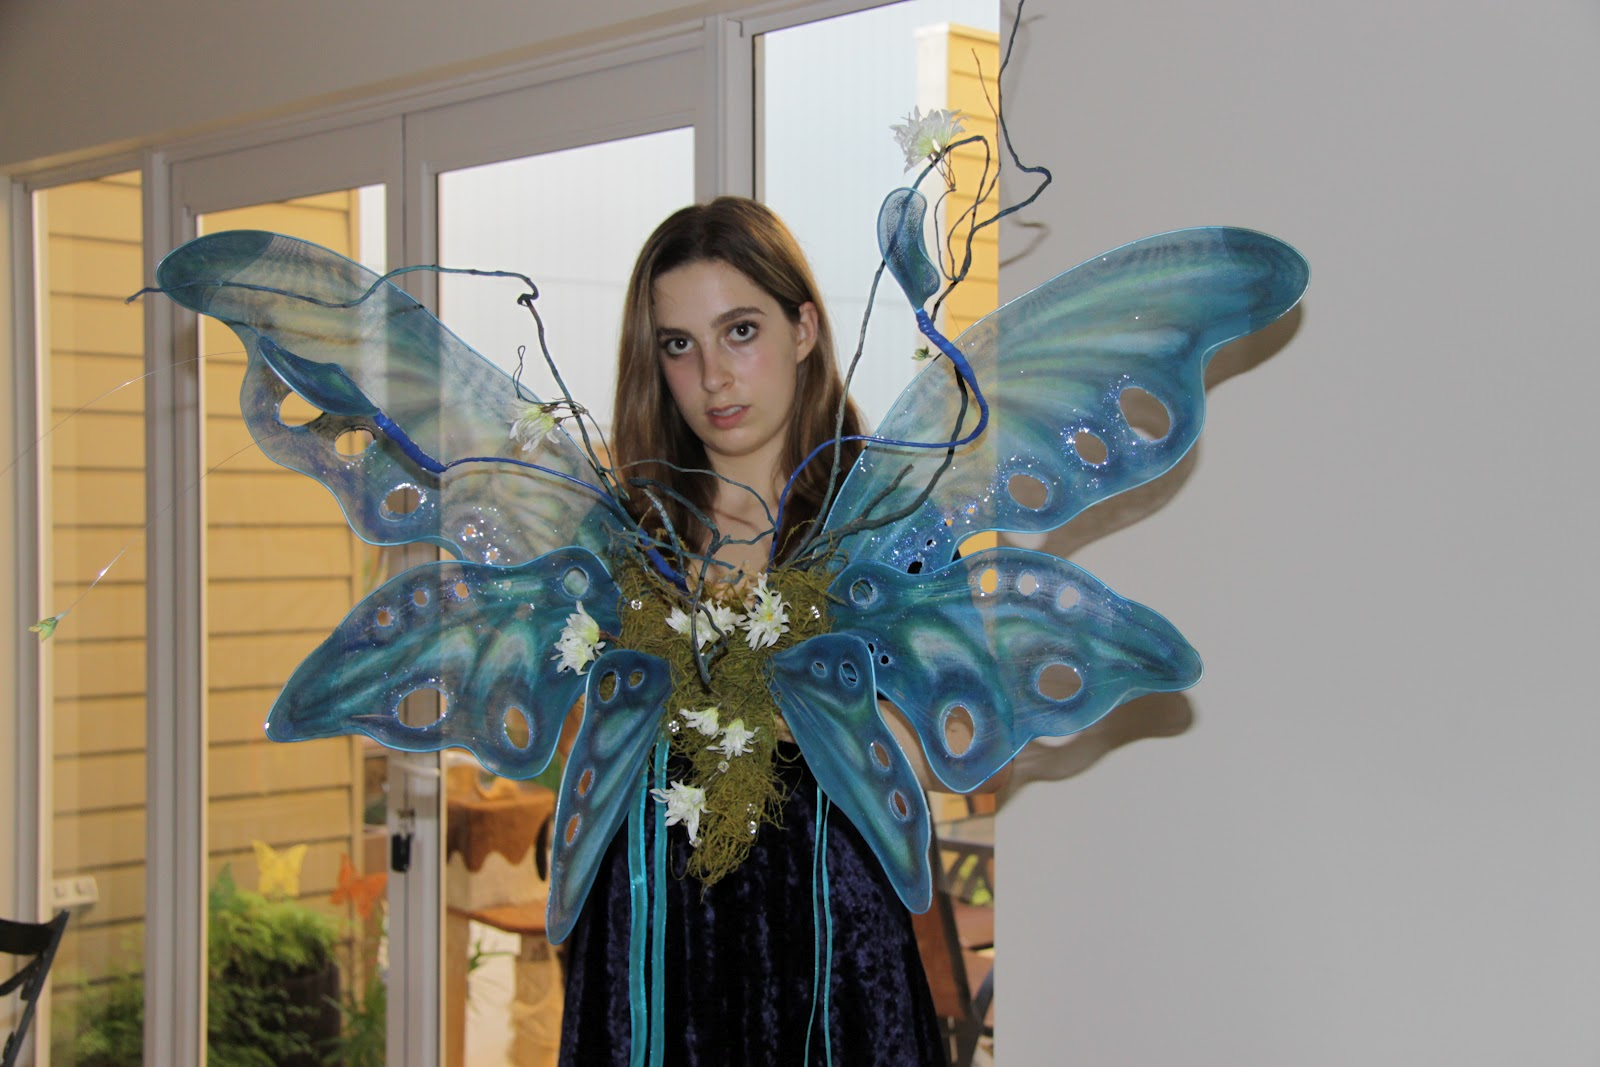 On a theme and with materials on hand the sport day costume had to be another fairy. I found an excellent fairy wing tutorial featuring Emilie Autumn.  sc 1 st  Give it a Whirl & Give it a Whirl: Fairy Costumes Complete Time for Sport Day Costume